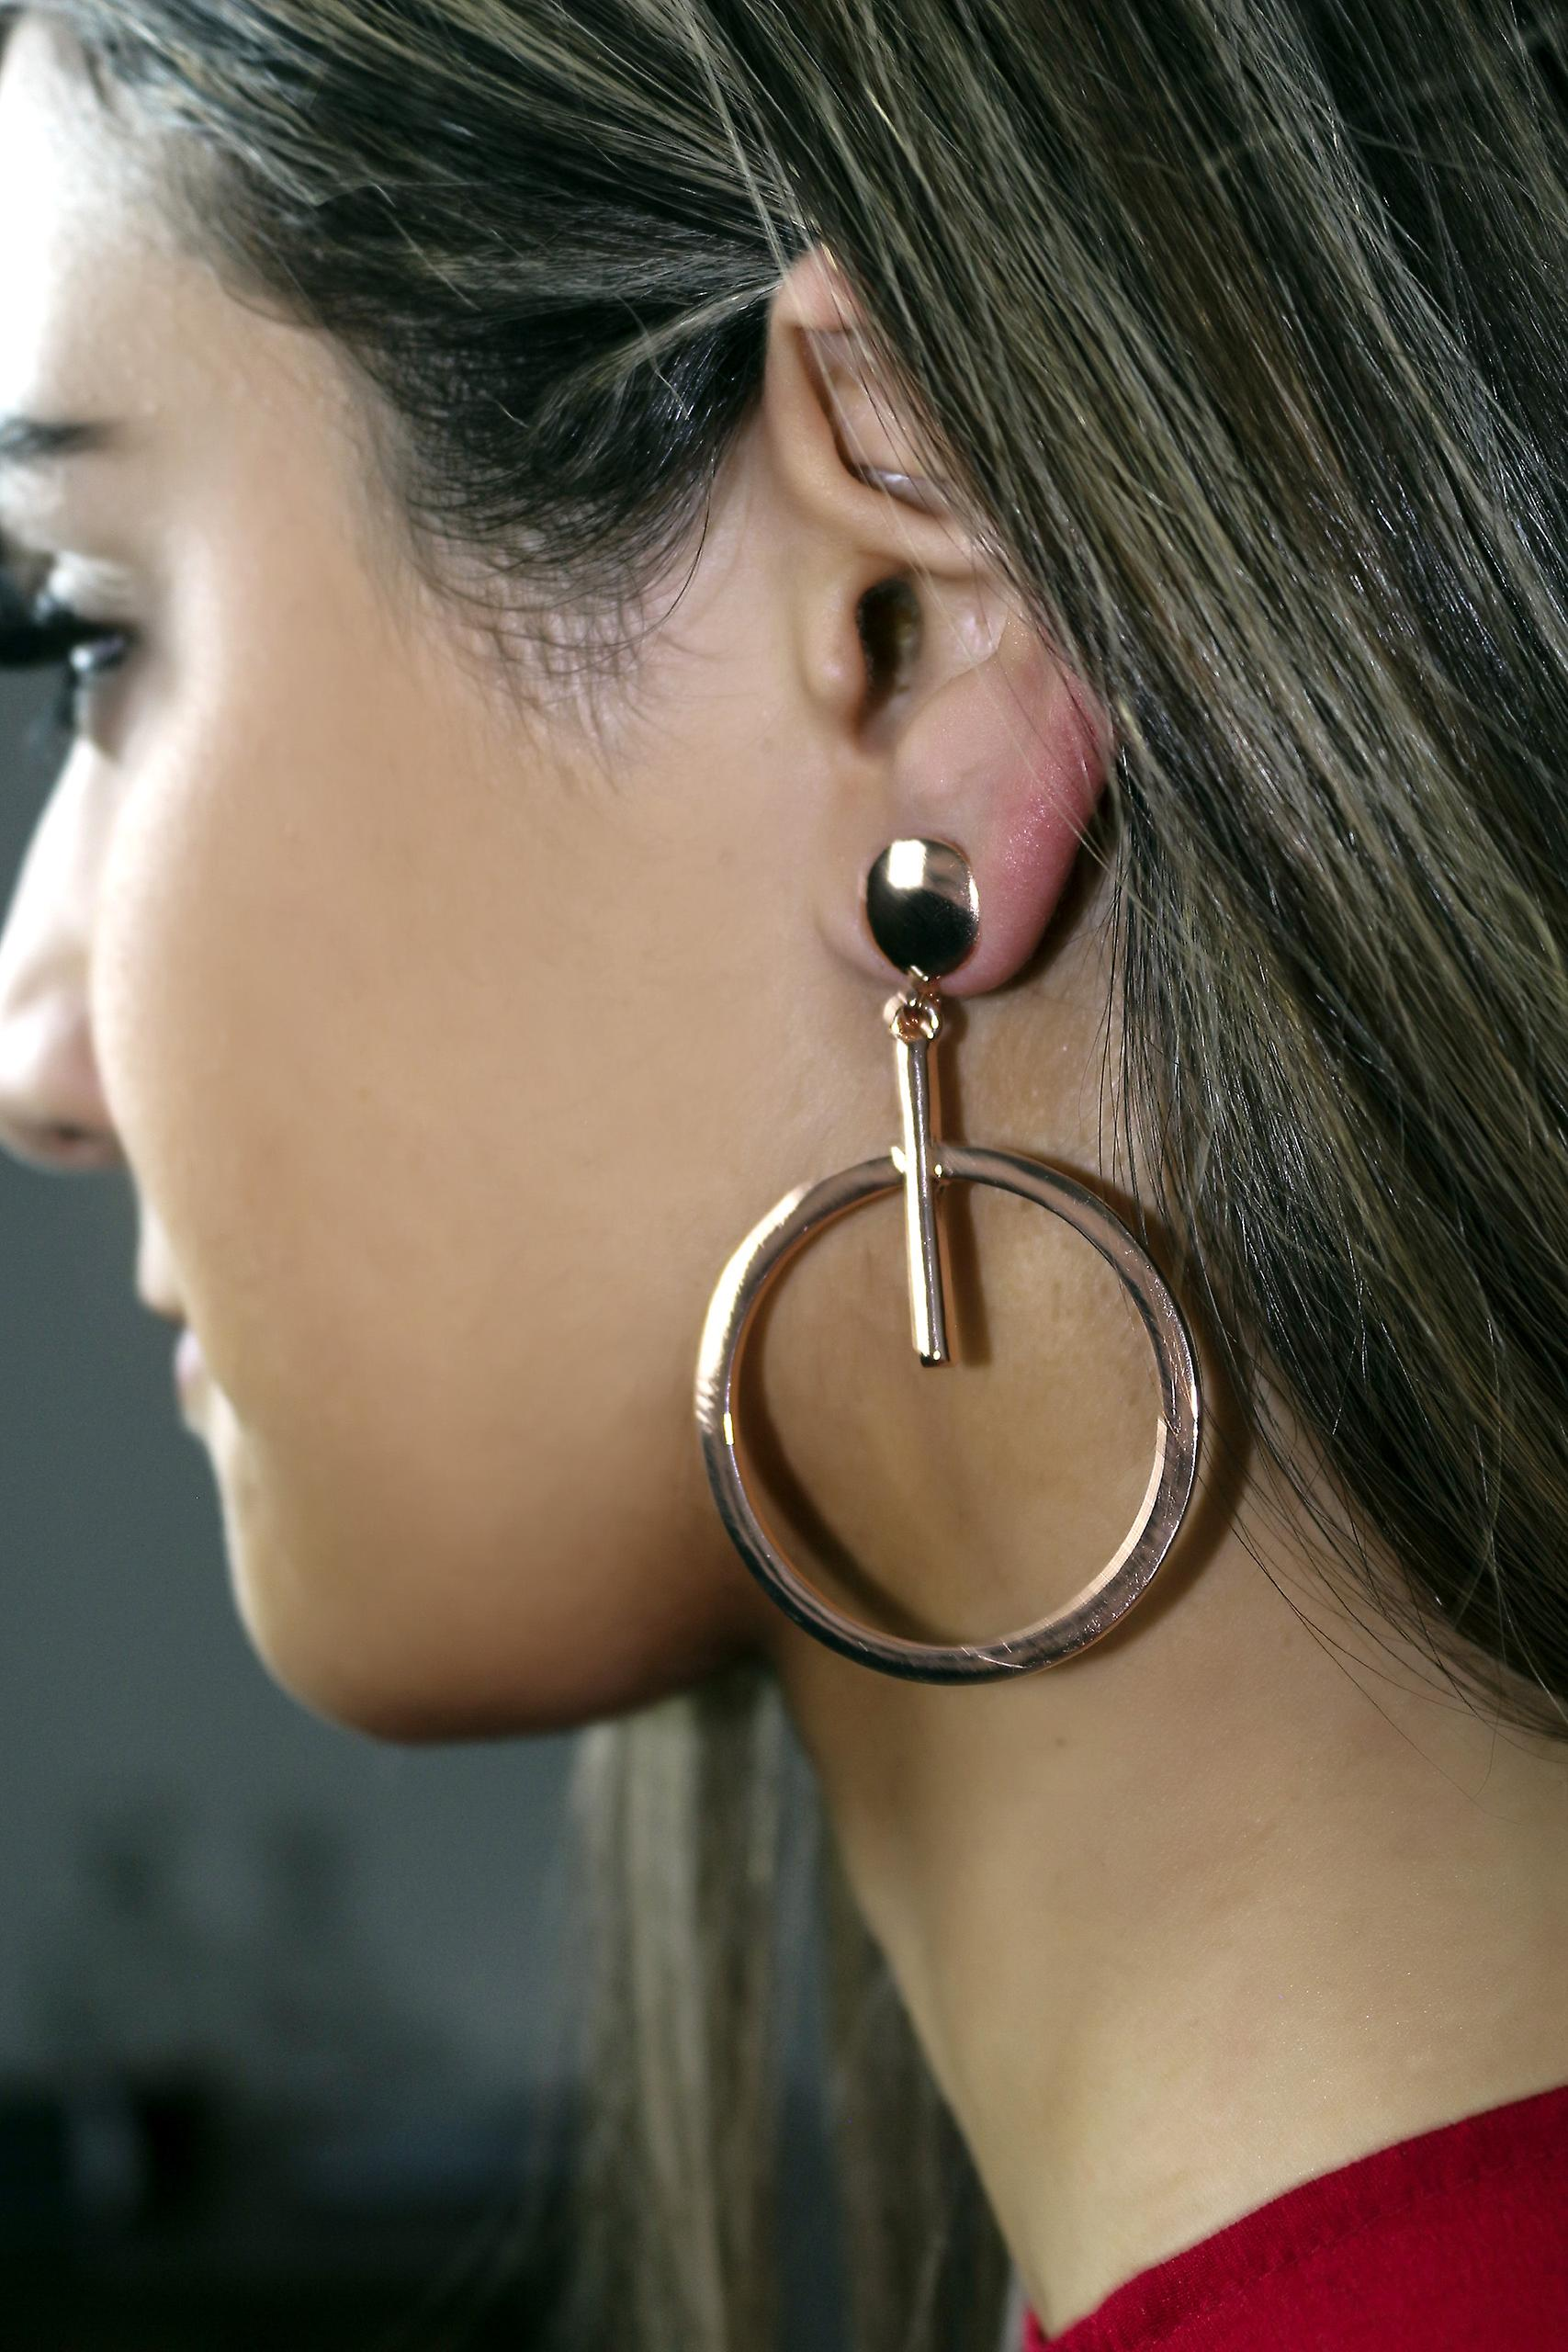 Rose Gold Earrings with Large Single Hoop and Bar